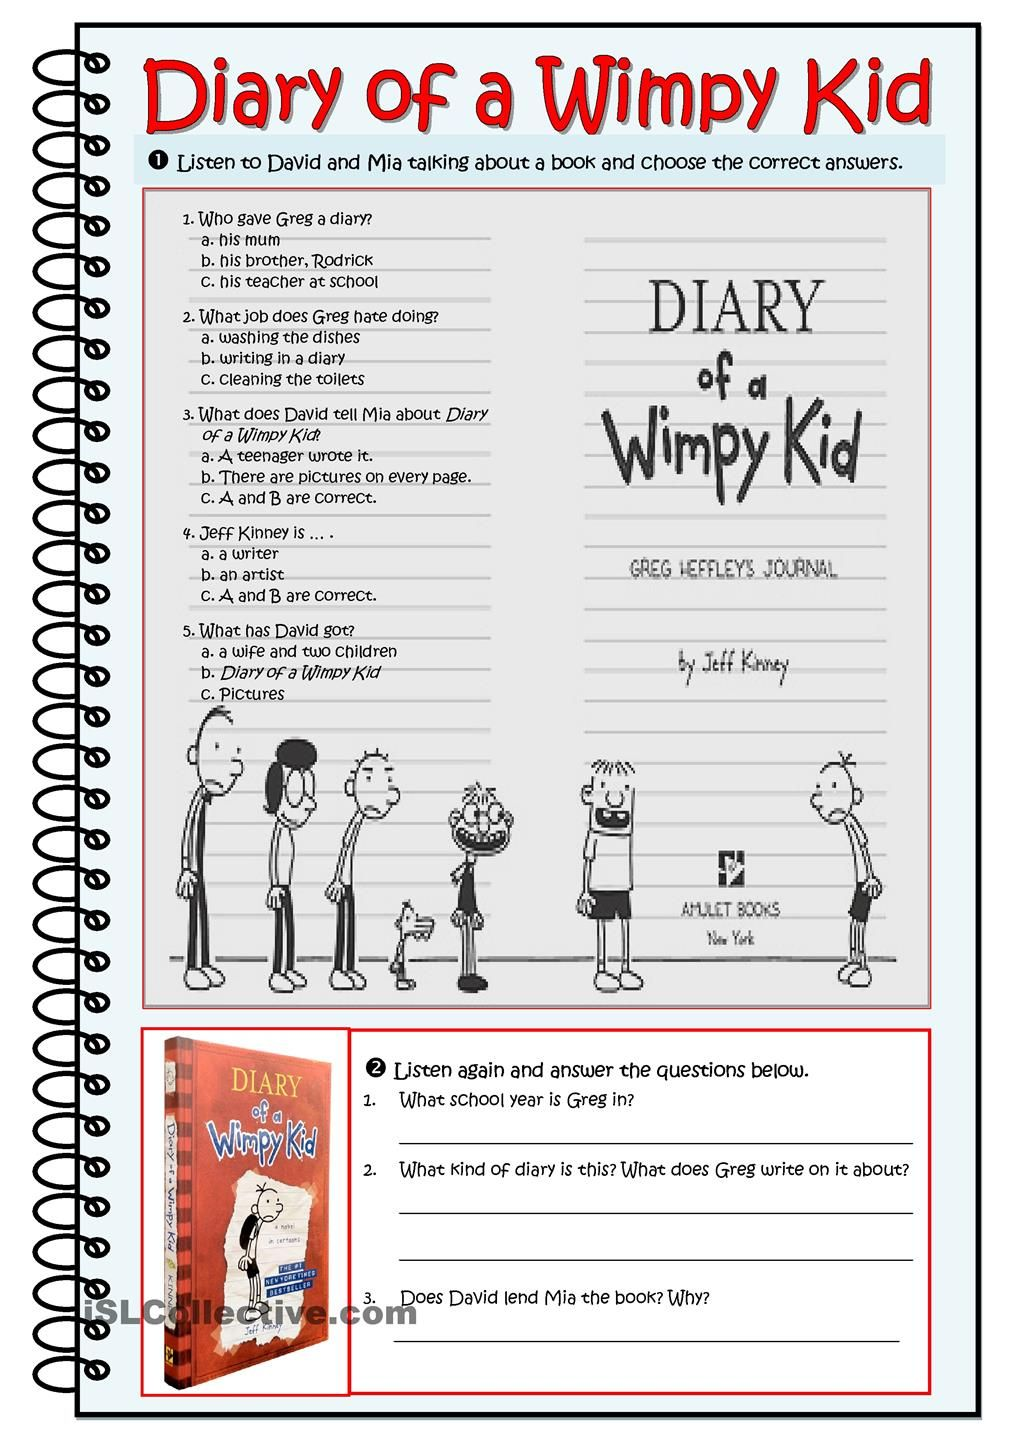 Writing future tense of verb worksheet turtle diary - Diary Of A Wimpy Kid Worksheet Comprehension Activitiesreading Comprehensionverb Tenseswimpy